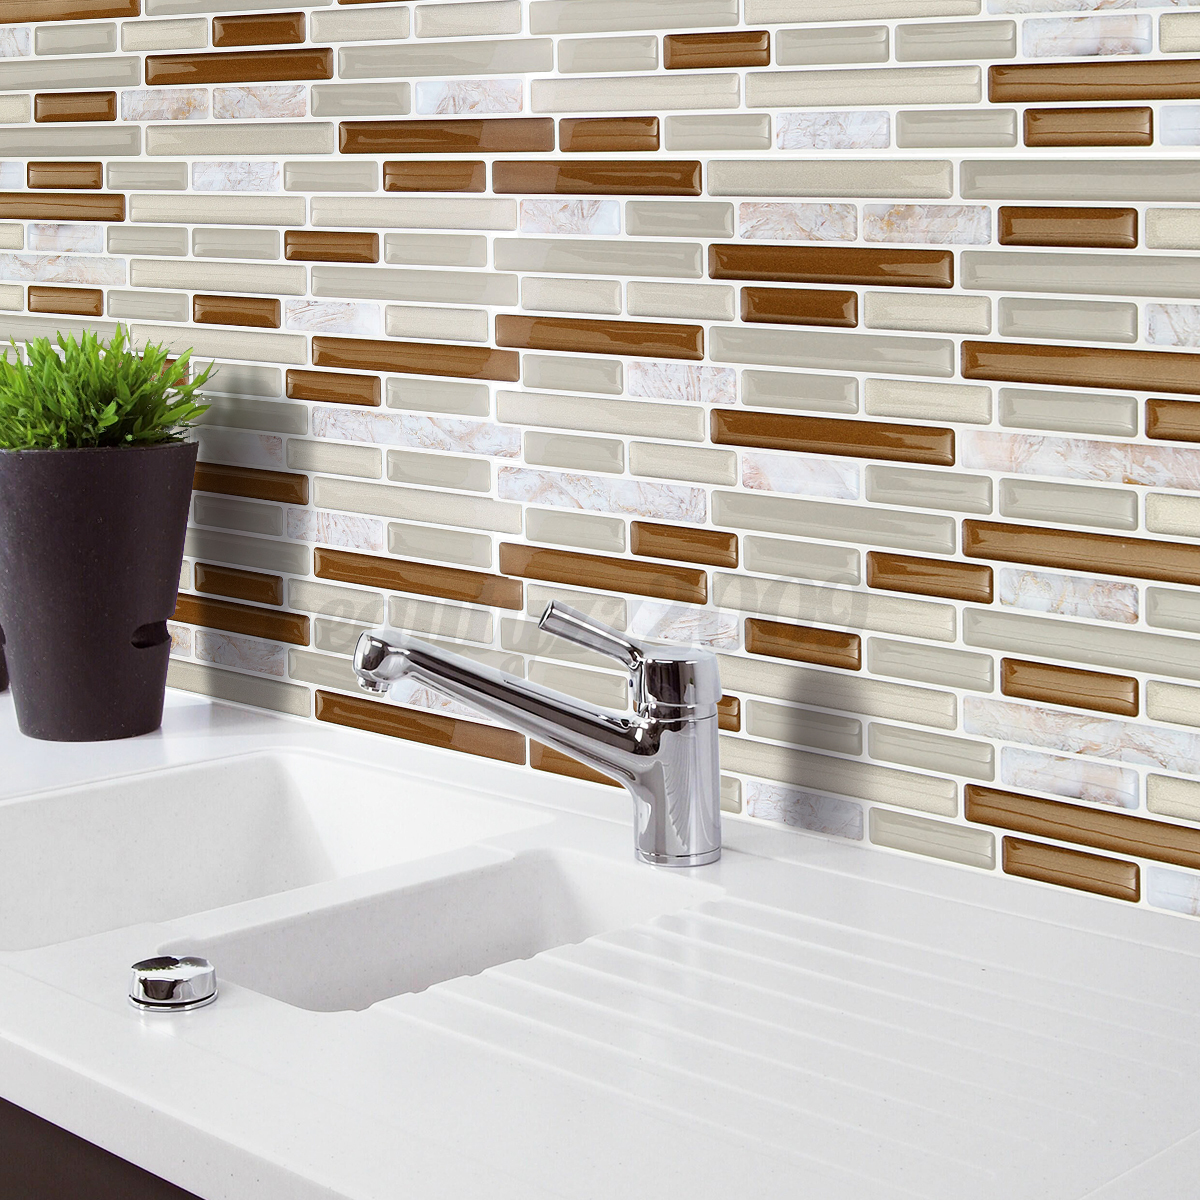 Carrelage Effet Brique 3d Brick Effect Wall Sticker Tile Brick Self Adhesive